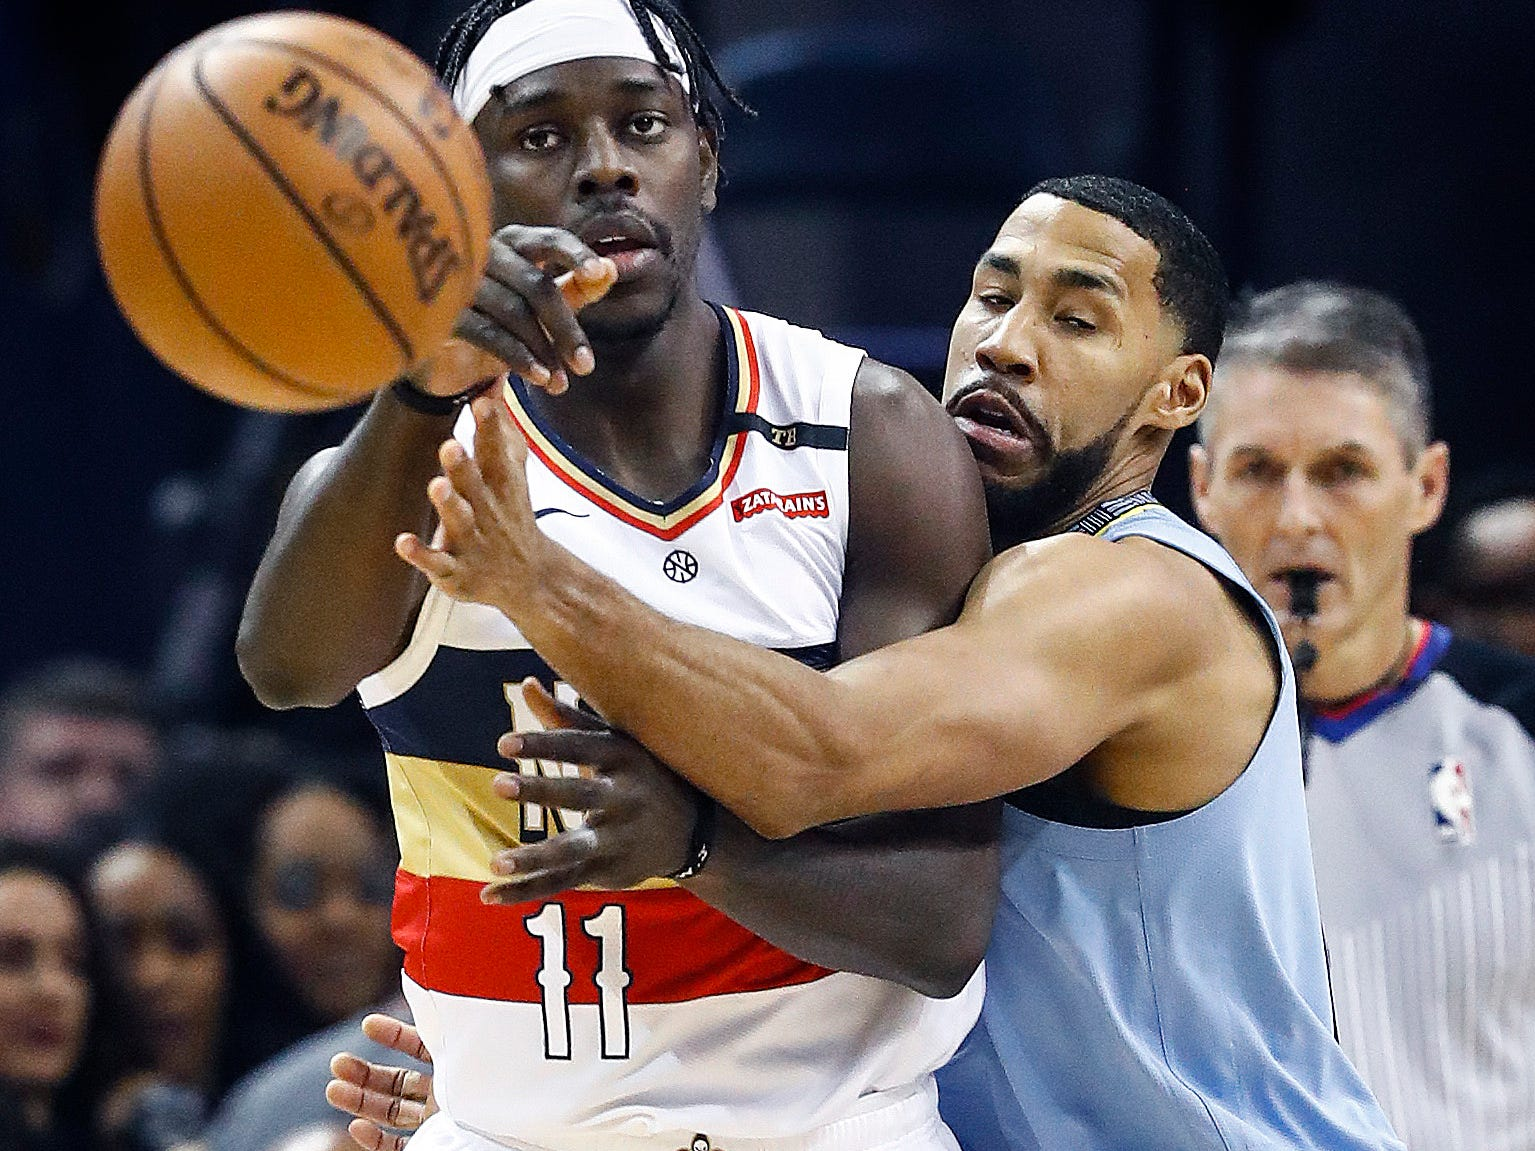 Memphis Grizzlies defender Garrett Temple (right) applies defensive pressure to New Orleans Pelicans guard Jrue Holiday (left) during action at the FedExForum in Memphis, Tenn., Monday, January 21, 2019.